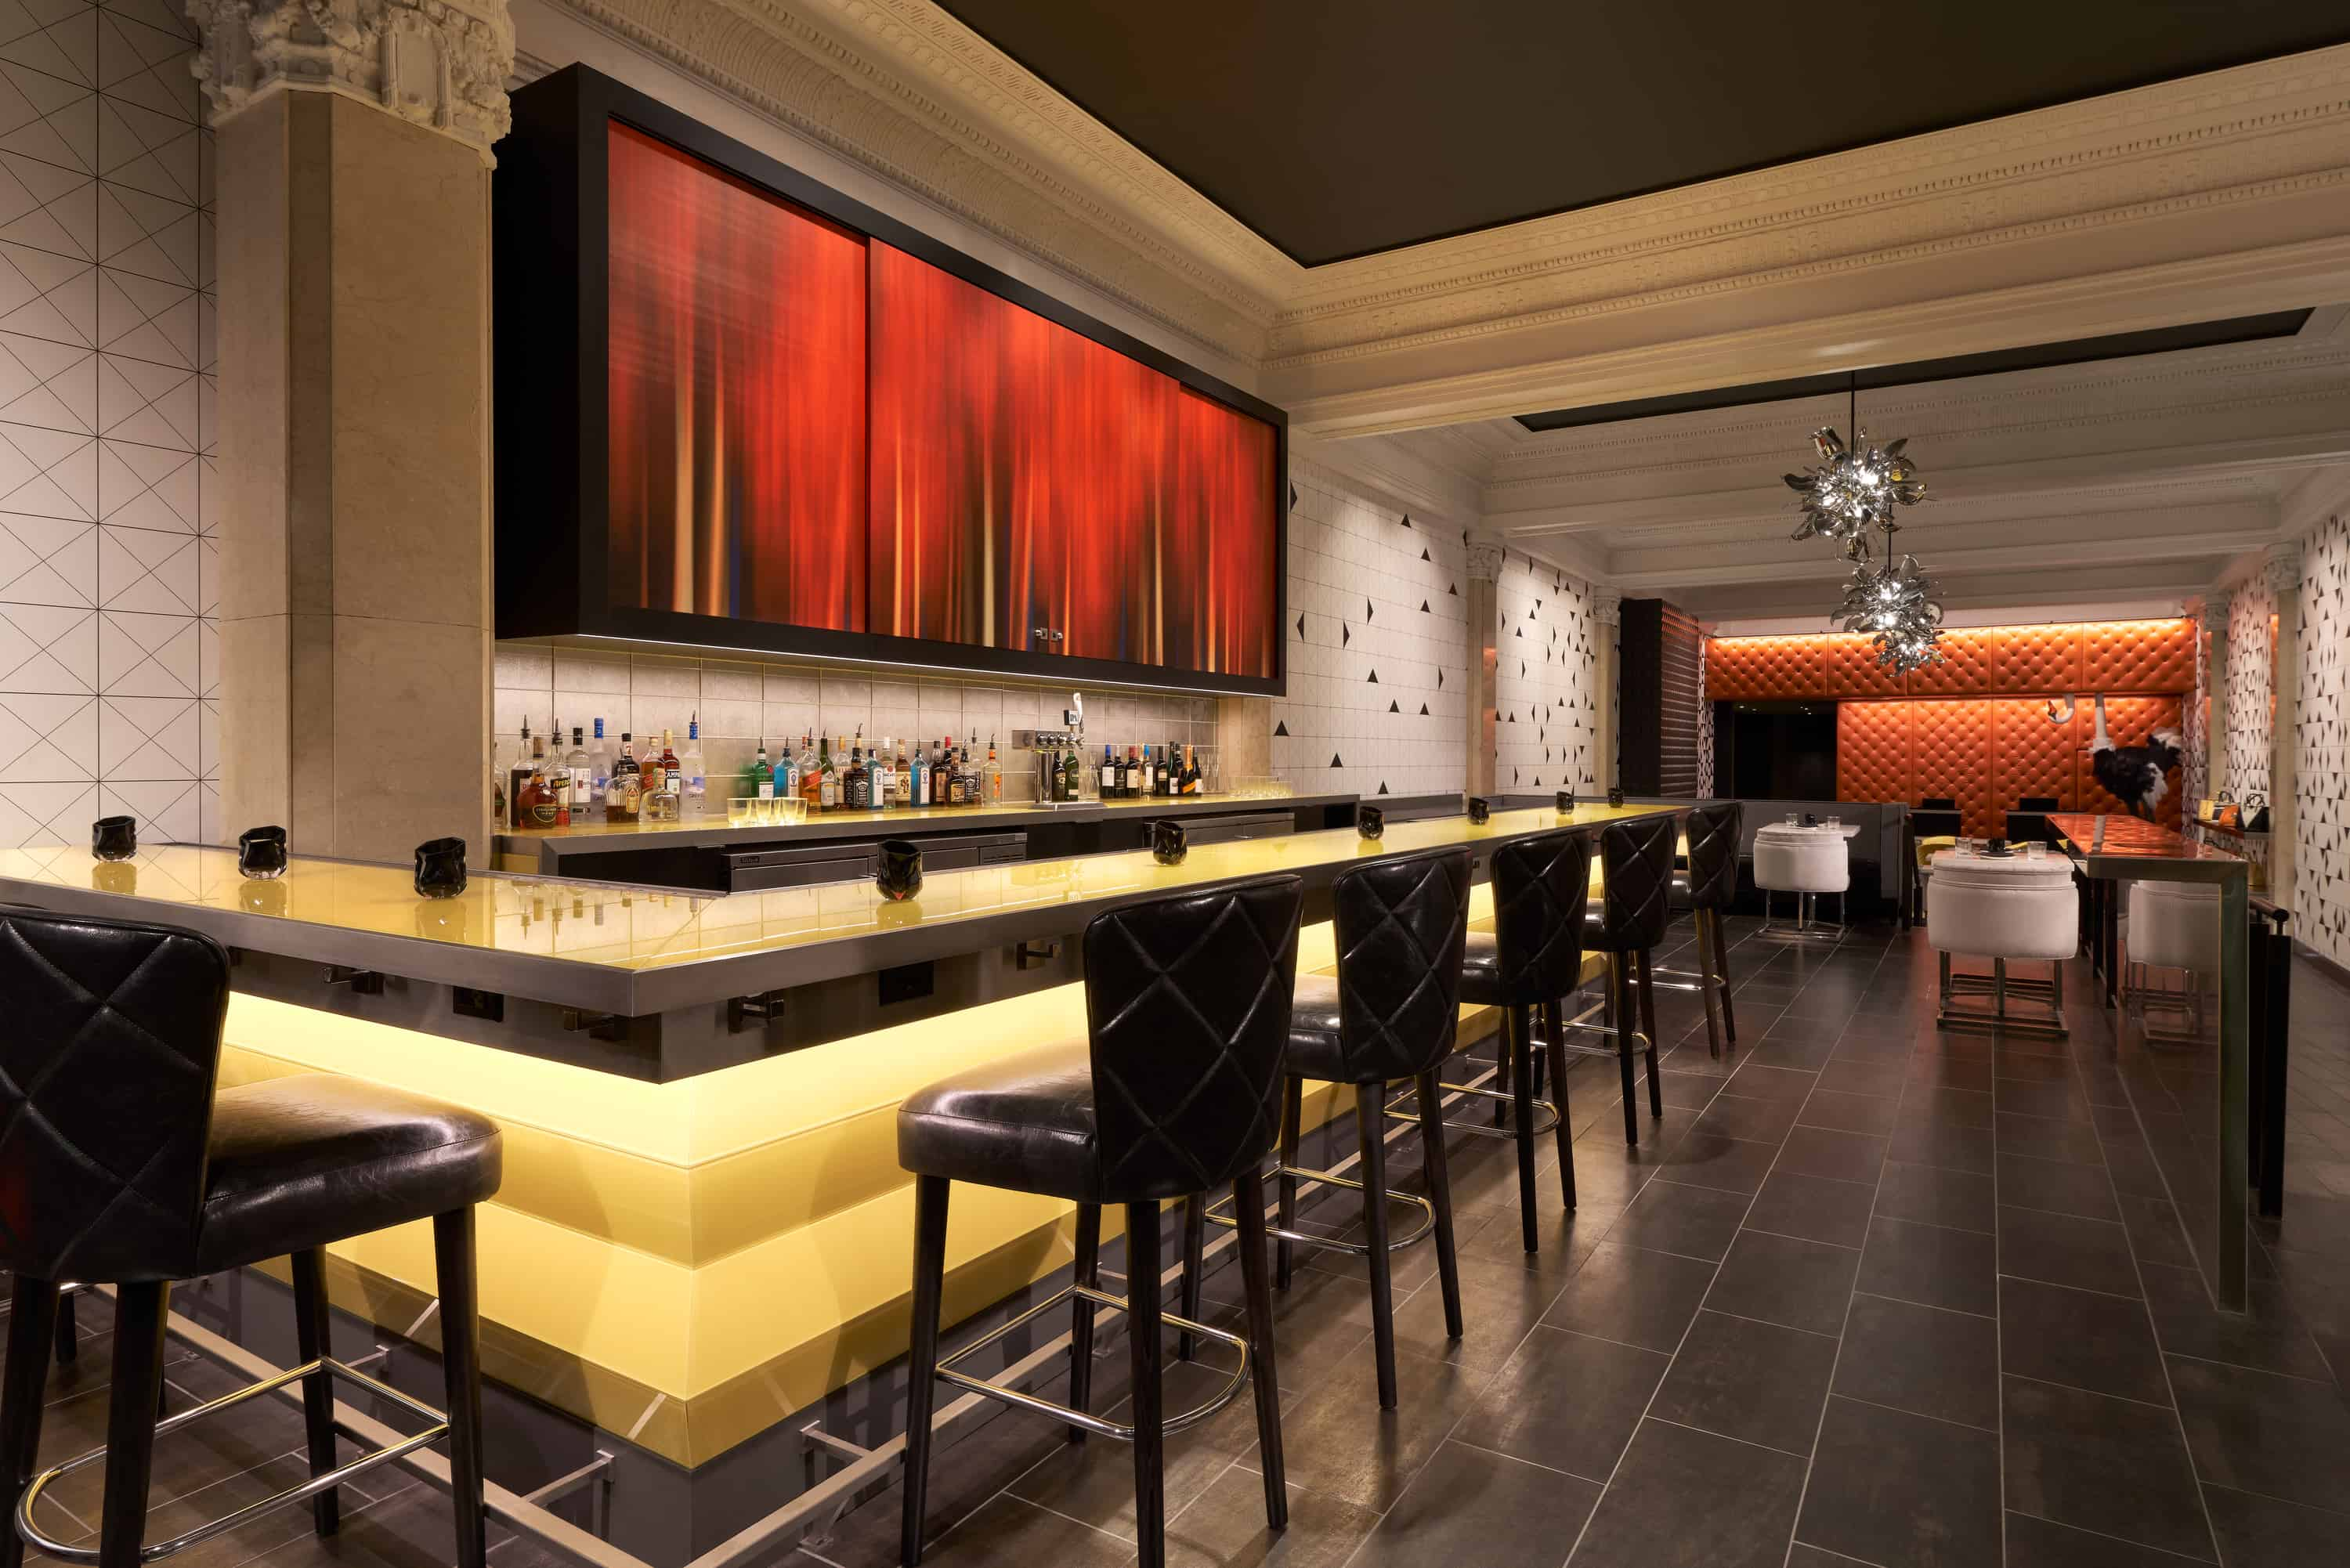 Struzzo bar with painted cabinets, yellow underlit bar and black tufted leather chairs.